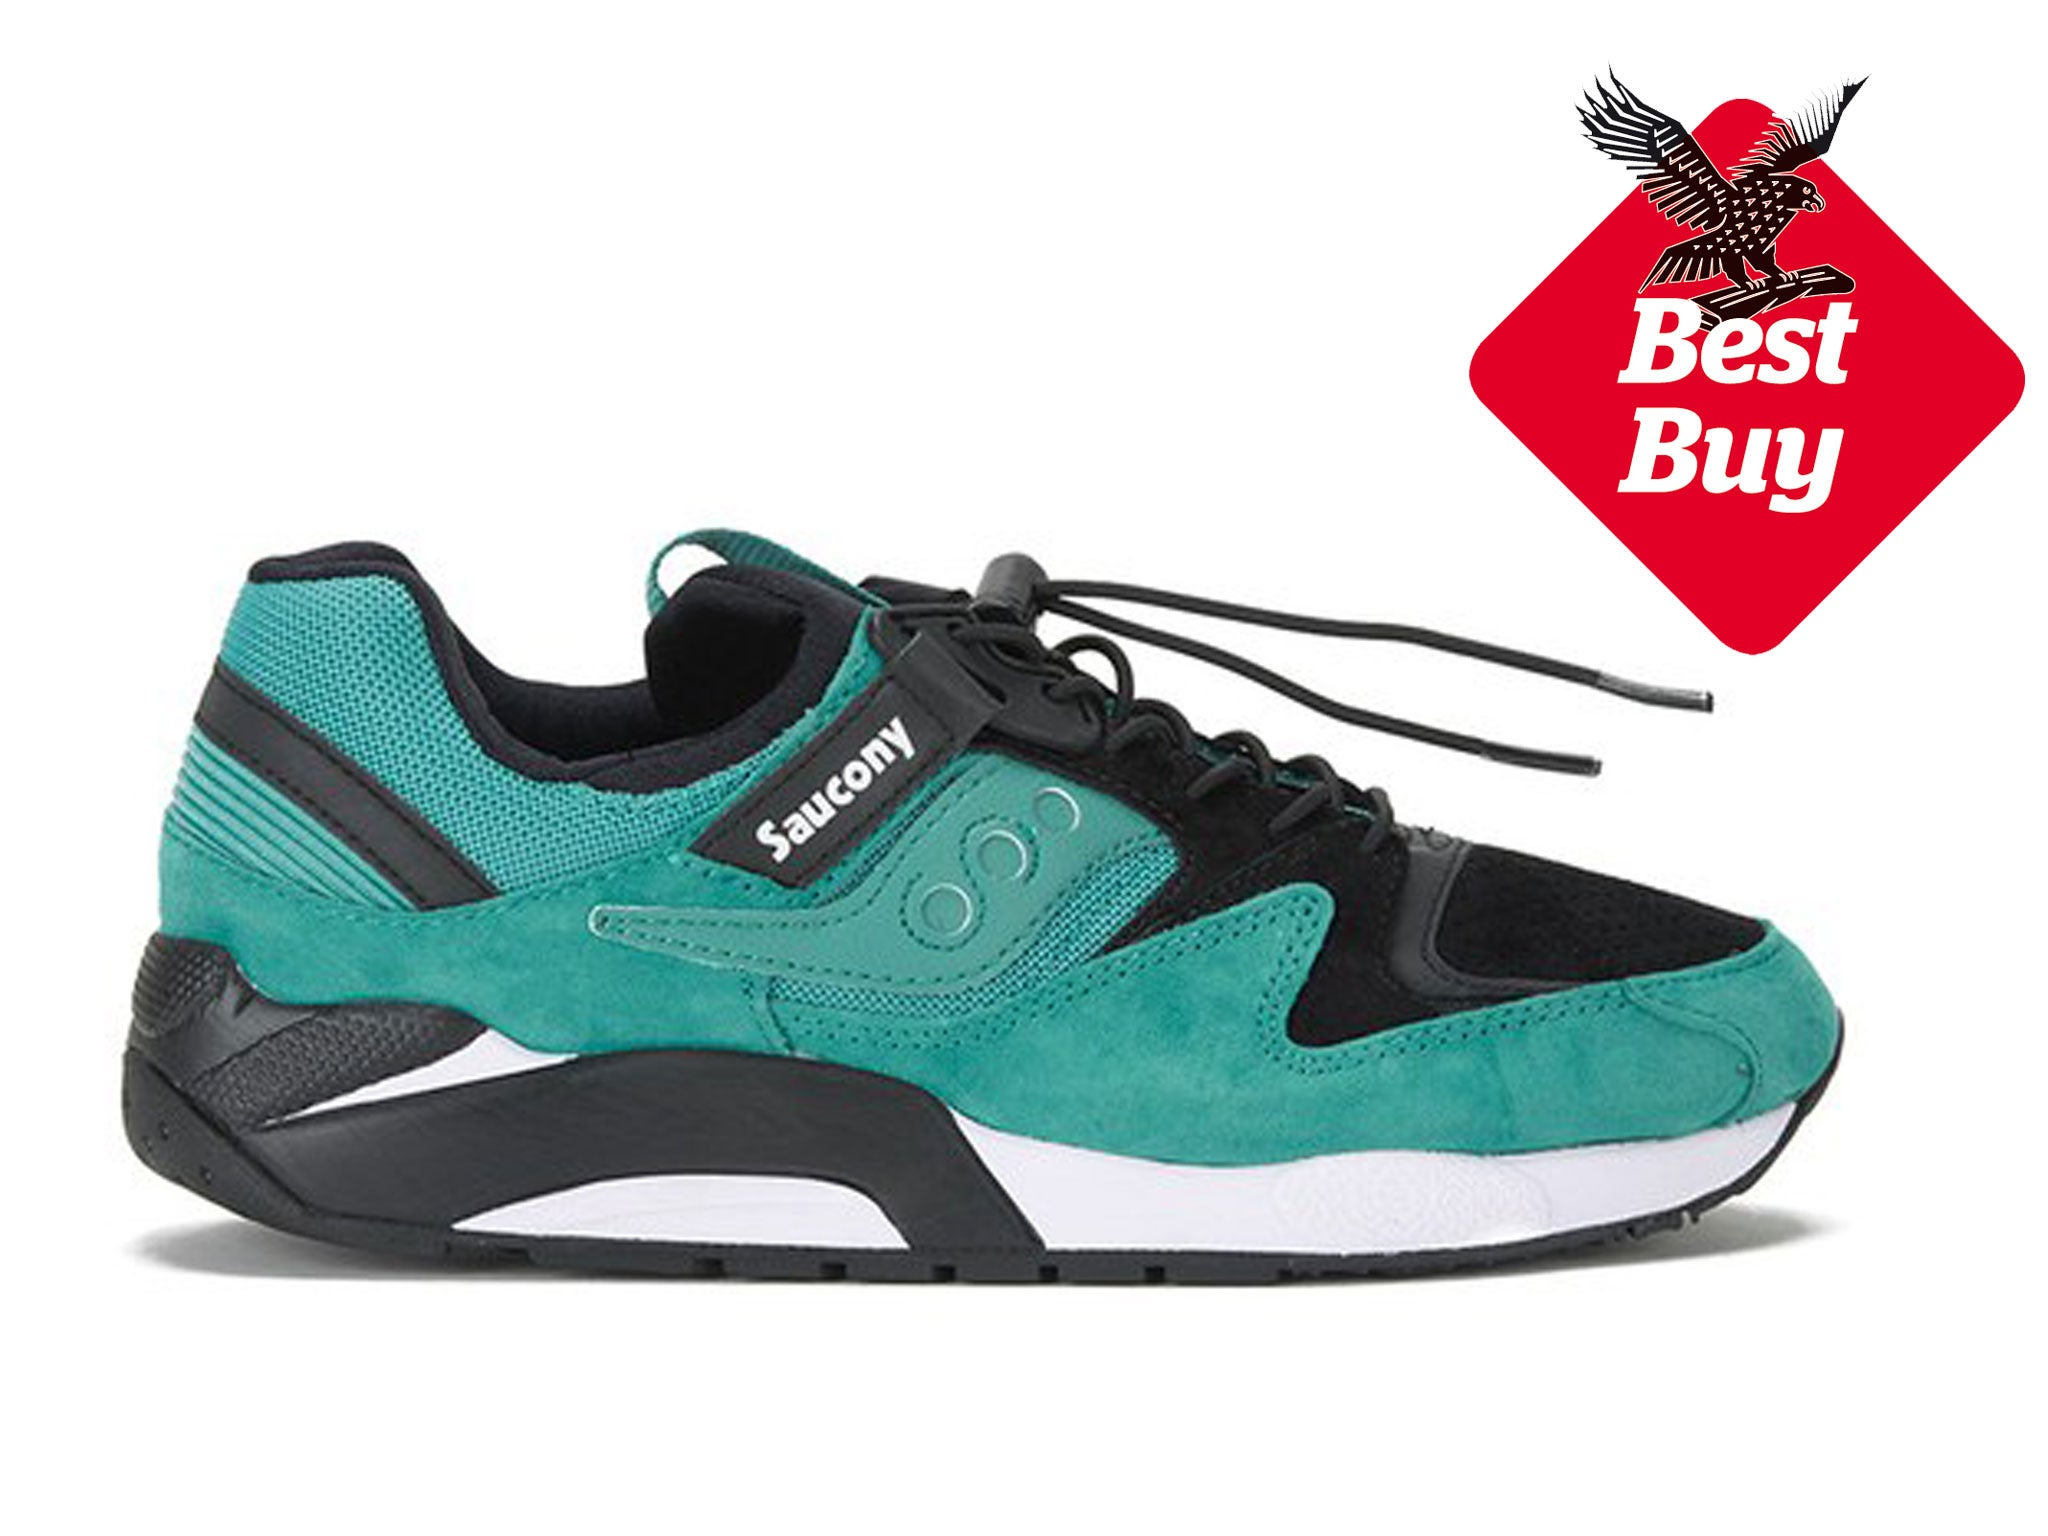 af20ef40e3aeb5 9 best men s trainers